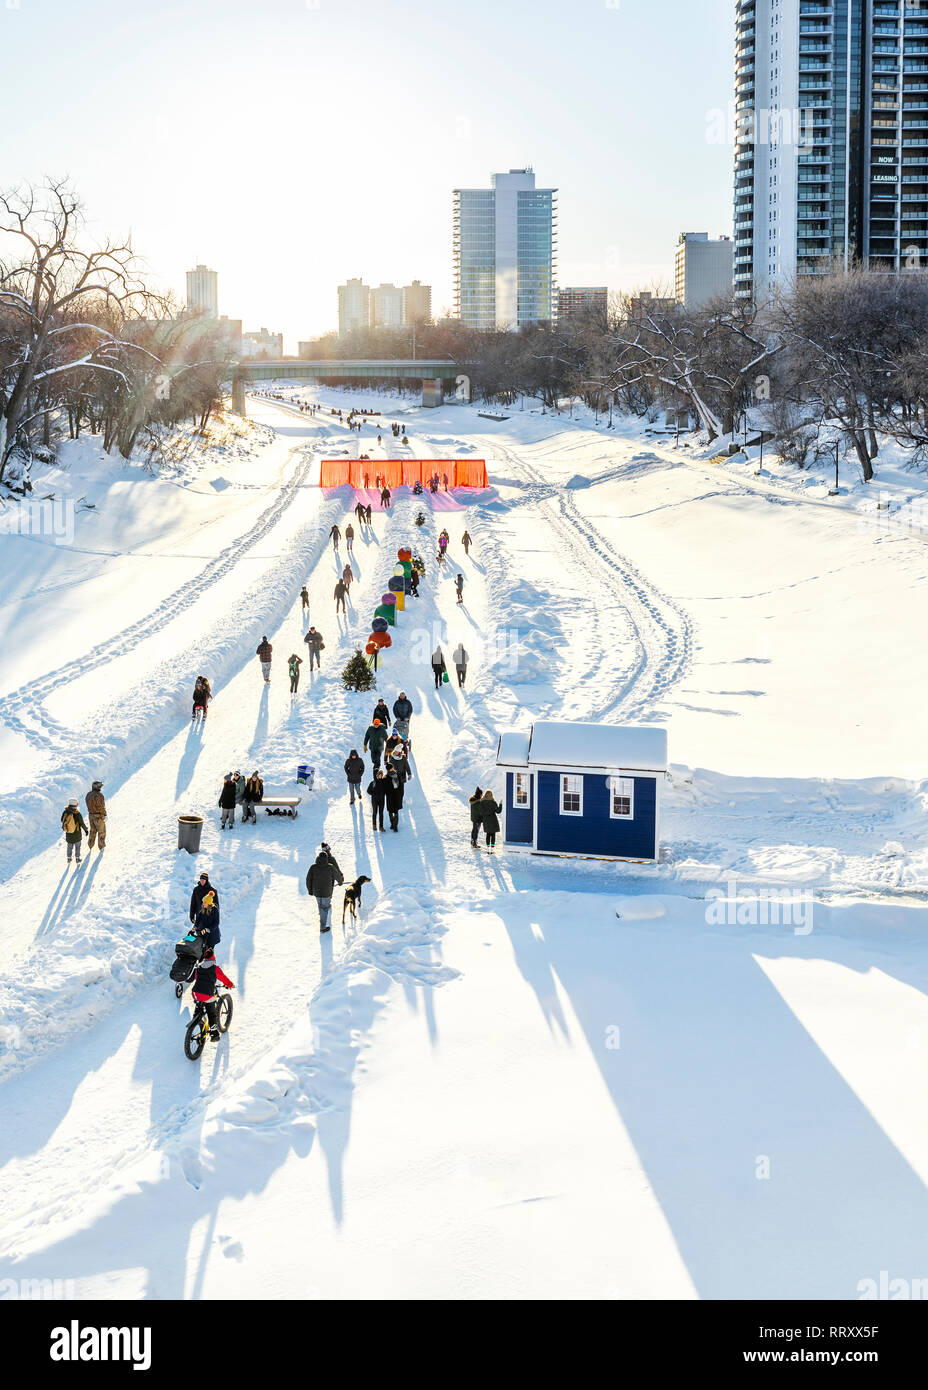 Ice skaters, cyclists, dog walkers on the frozen Assiniboine River, part of the Red River Mutual Trail, The Forks, Winnipeg, Manitoba, Canada. - Stock Image